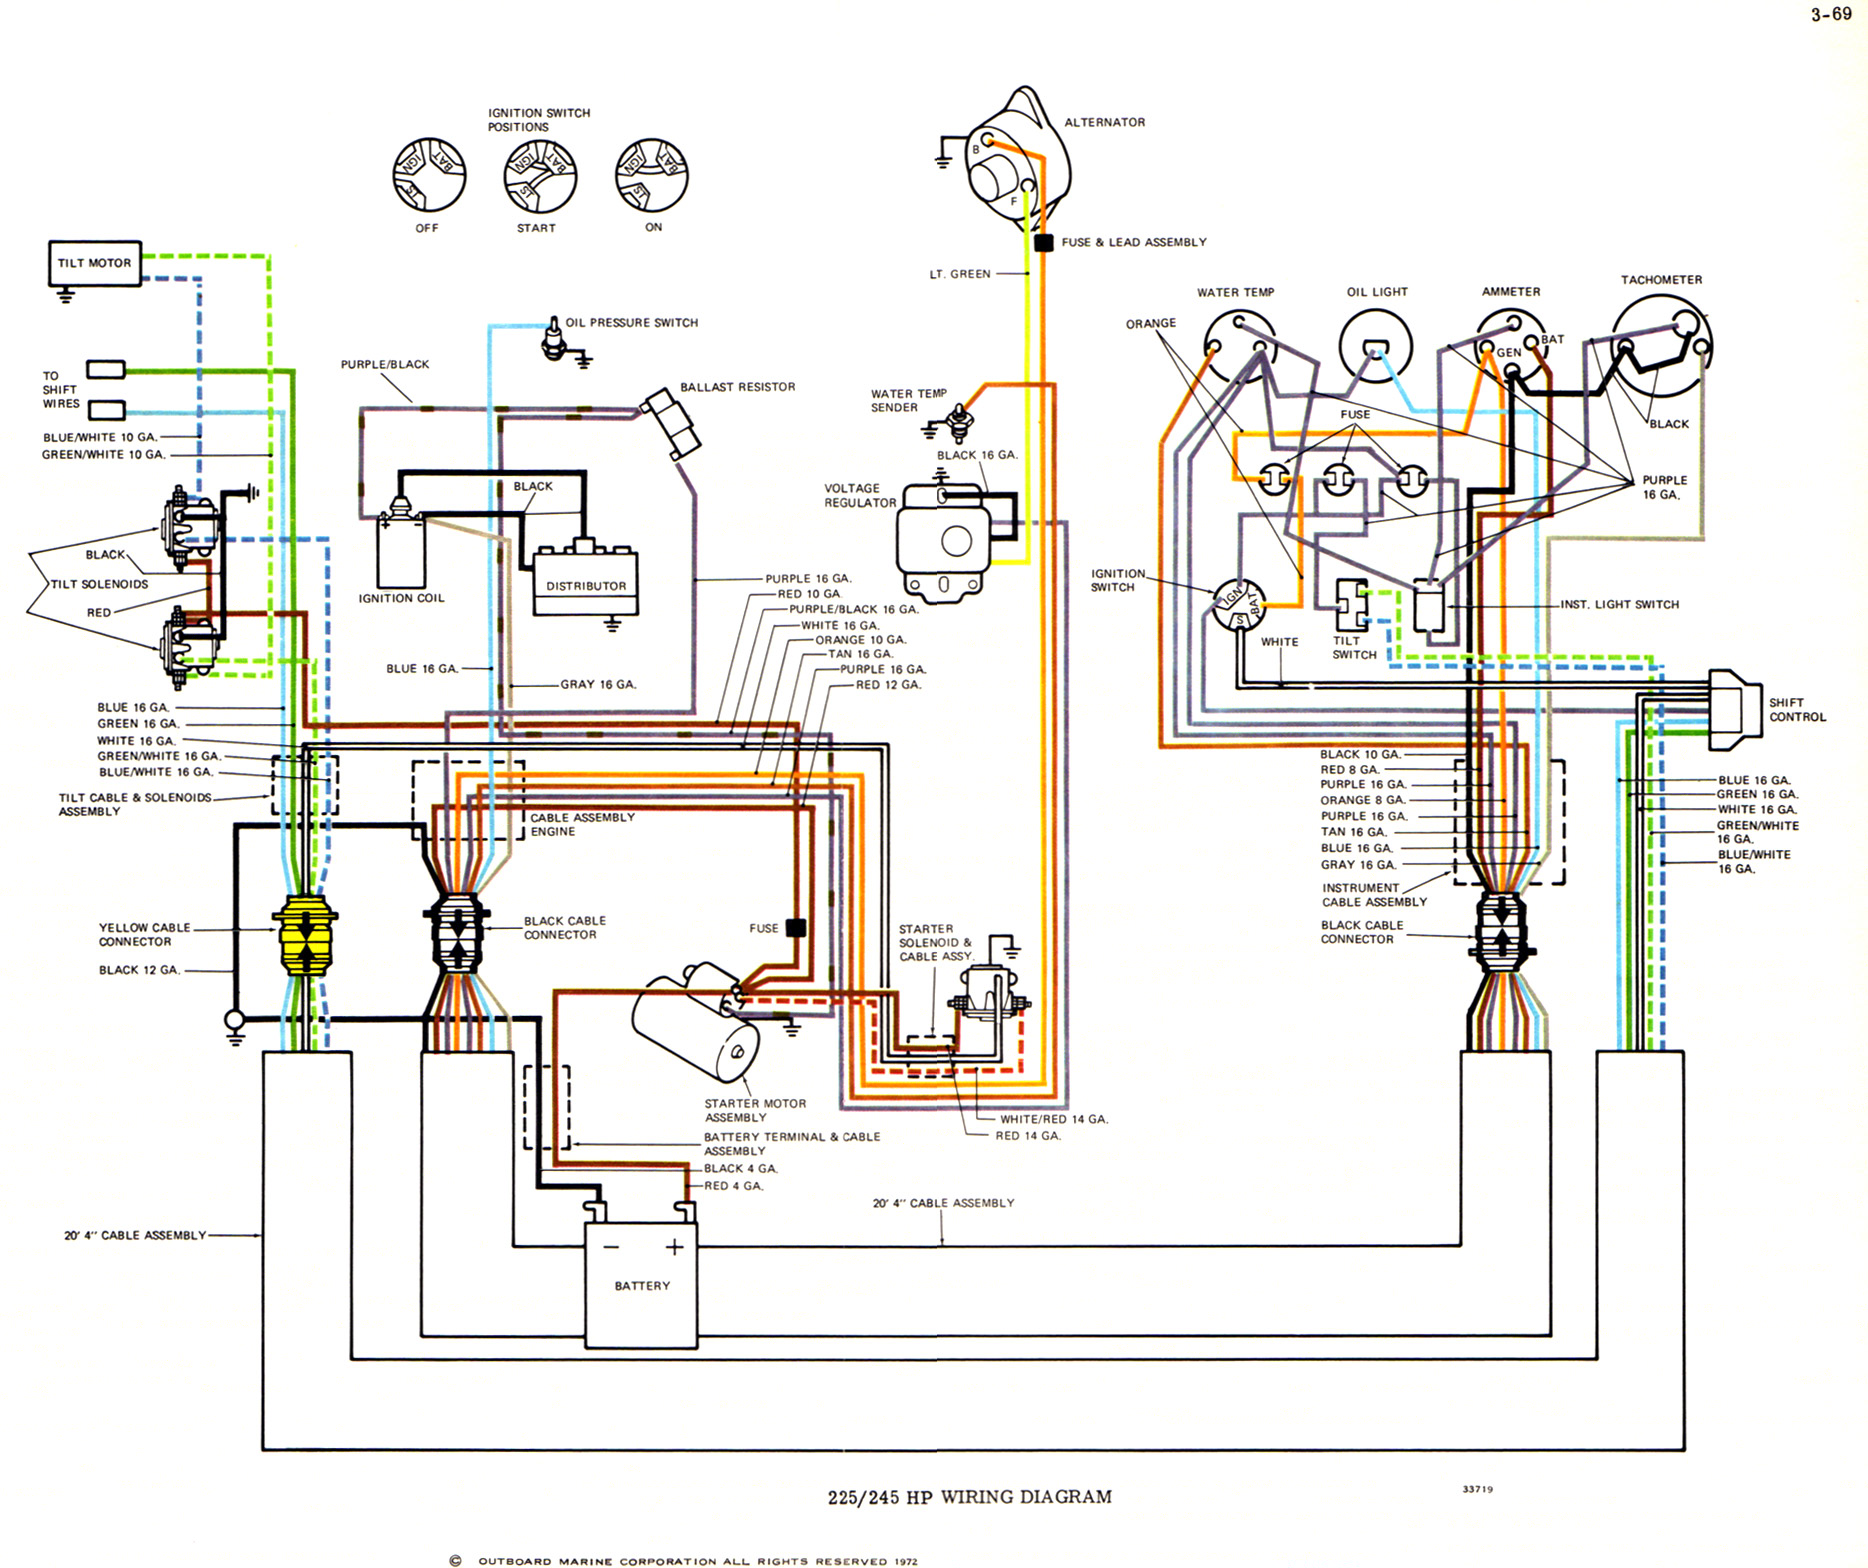 73_OMC_V8_all_big omc wiring harness diagram johmson wiring harness \u2022 wiring johnson outboard motor wiring harness 50 hp at soozxer.org